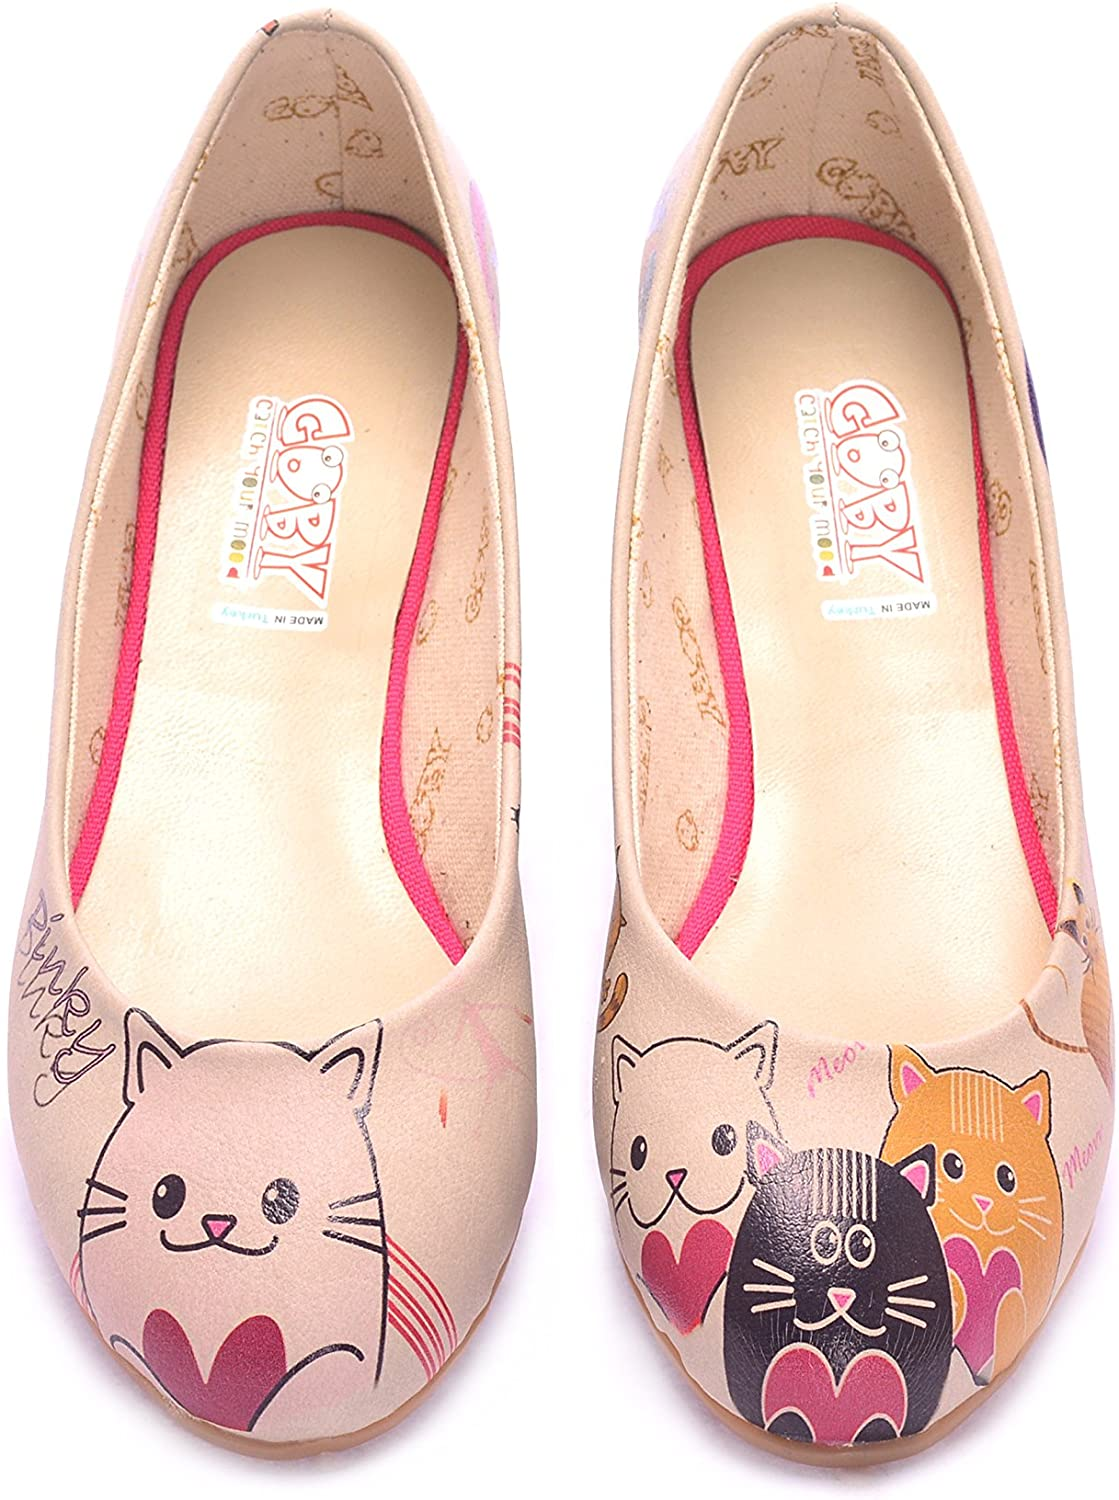 Goby Women's shoes  Cat & Heart Ballet Flatwith Memory Foam '1075'